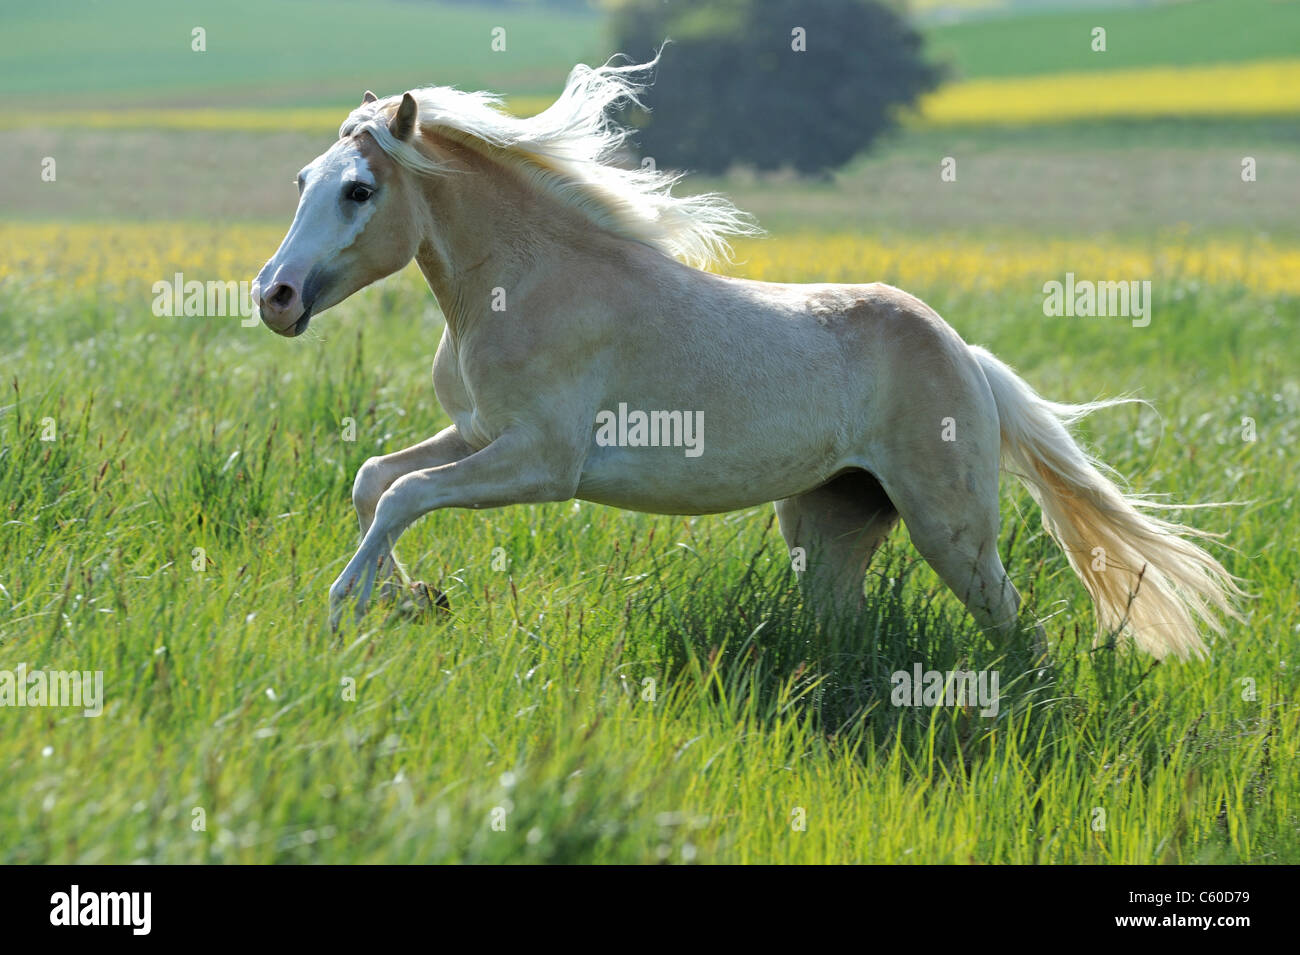 Haflinger Horse (Equus ferus caballus). Young mare in a gallop through tall grass. - Stock Image